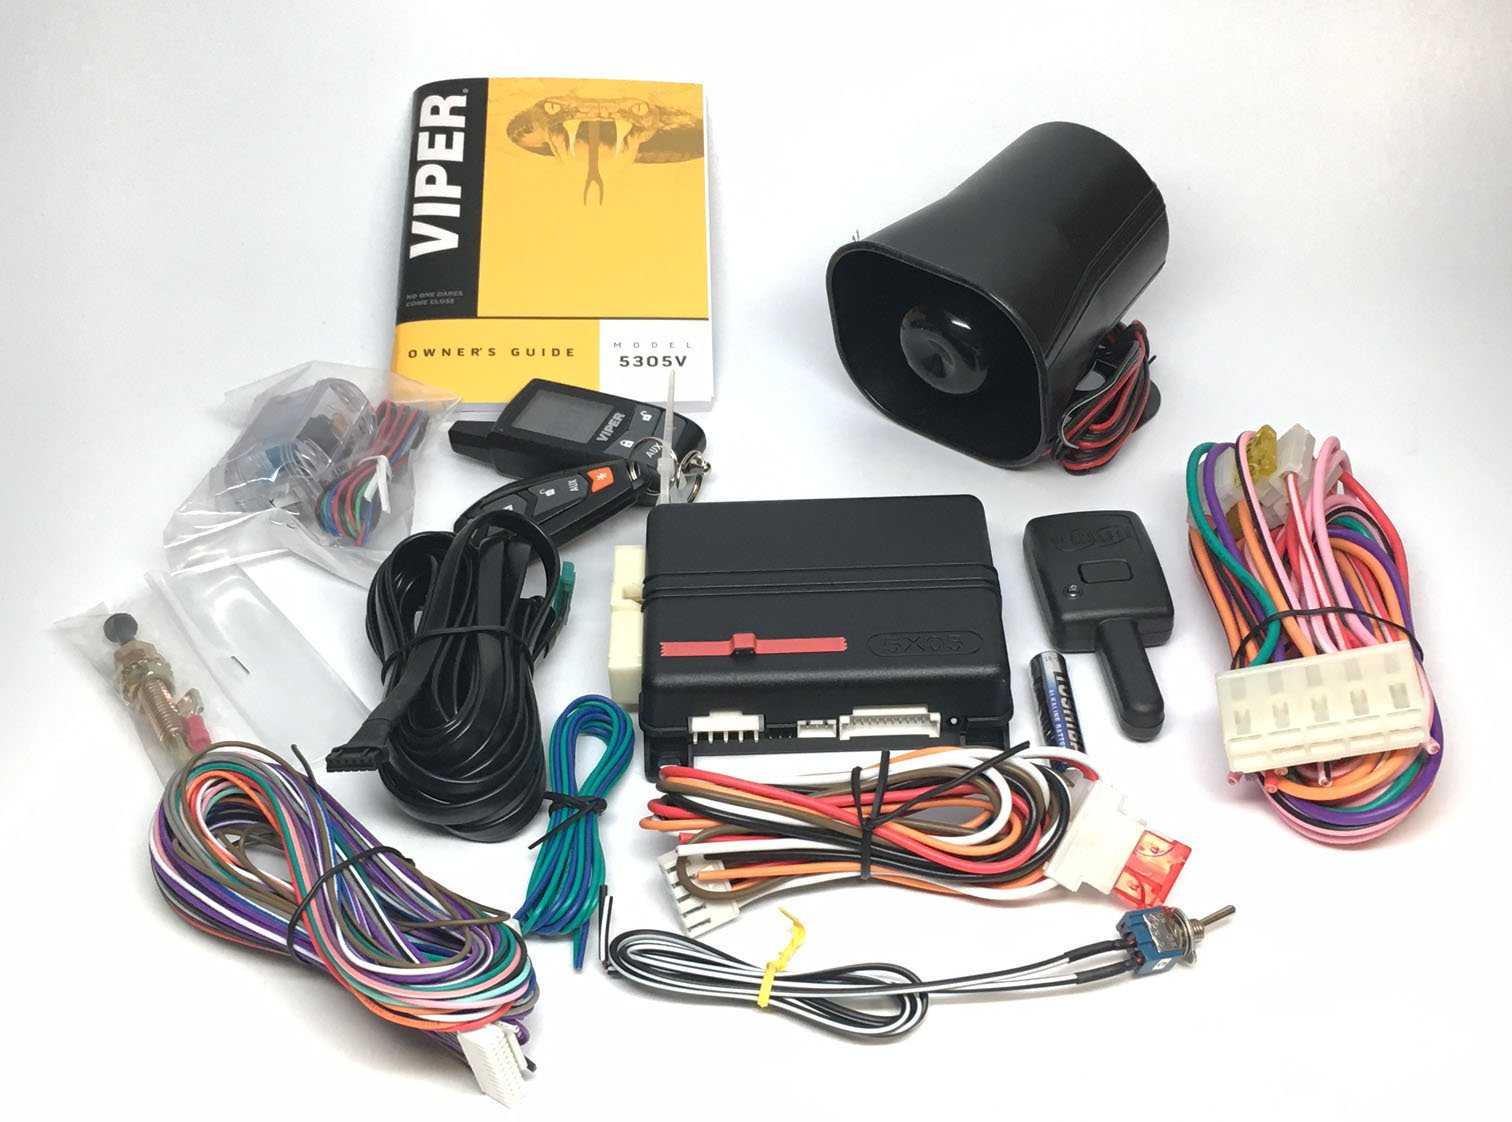 Viper 5305V 2-Way LCD Security Alarm & Remote Car Starter & Directed DB3 XPressKit DEI Databus ALL Combo Bypass / Door Lock Interface Bundle Package by Click & ADD (Image #4)